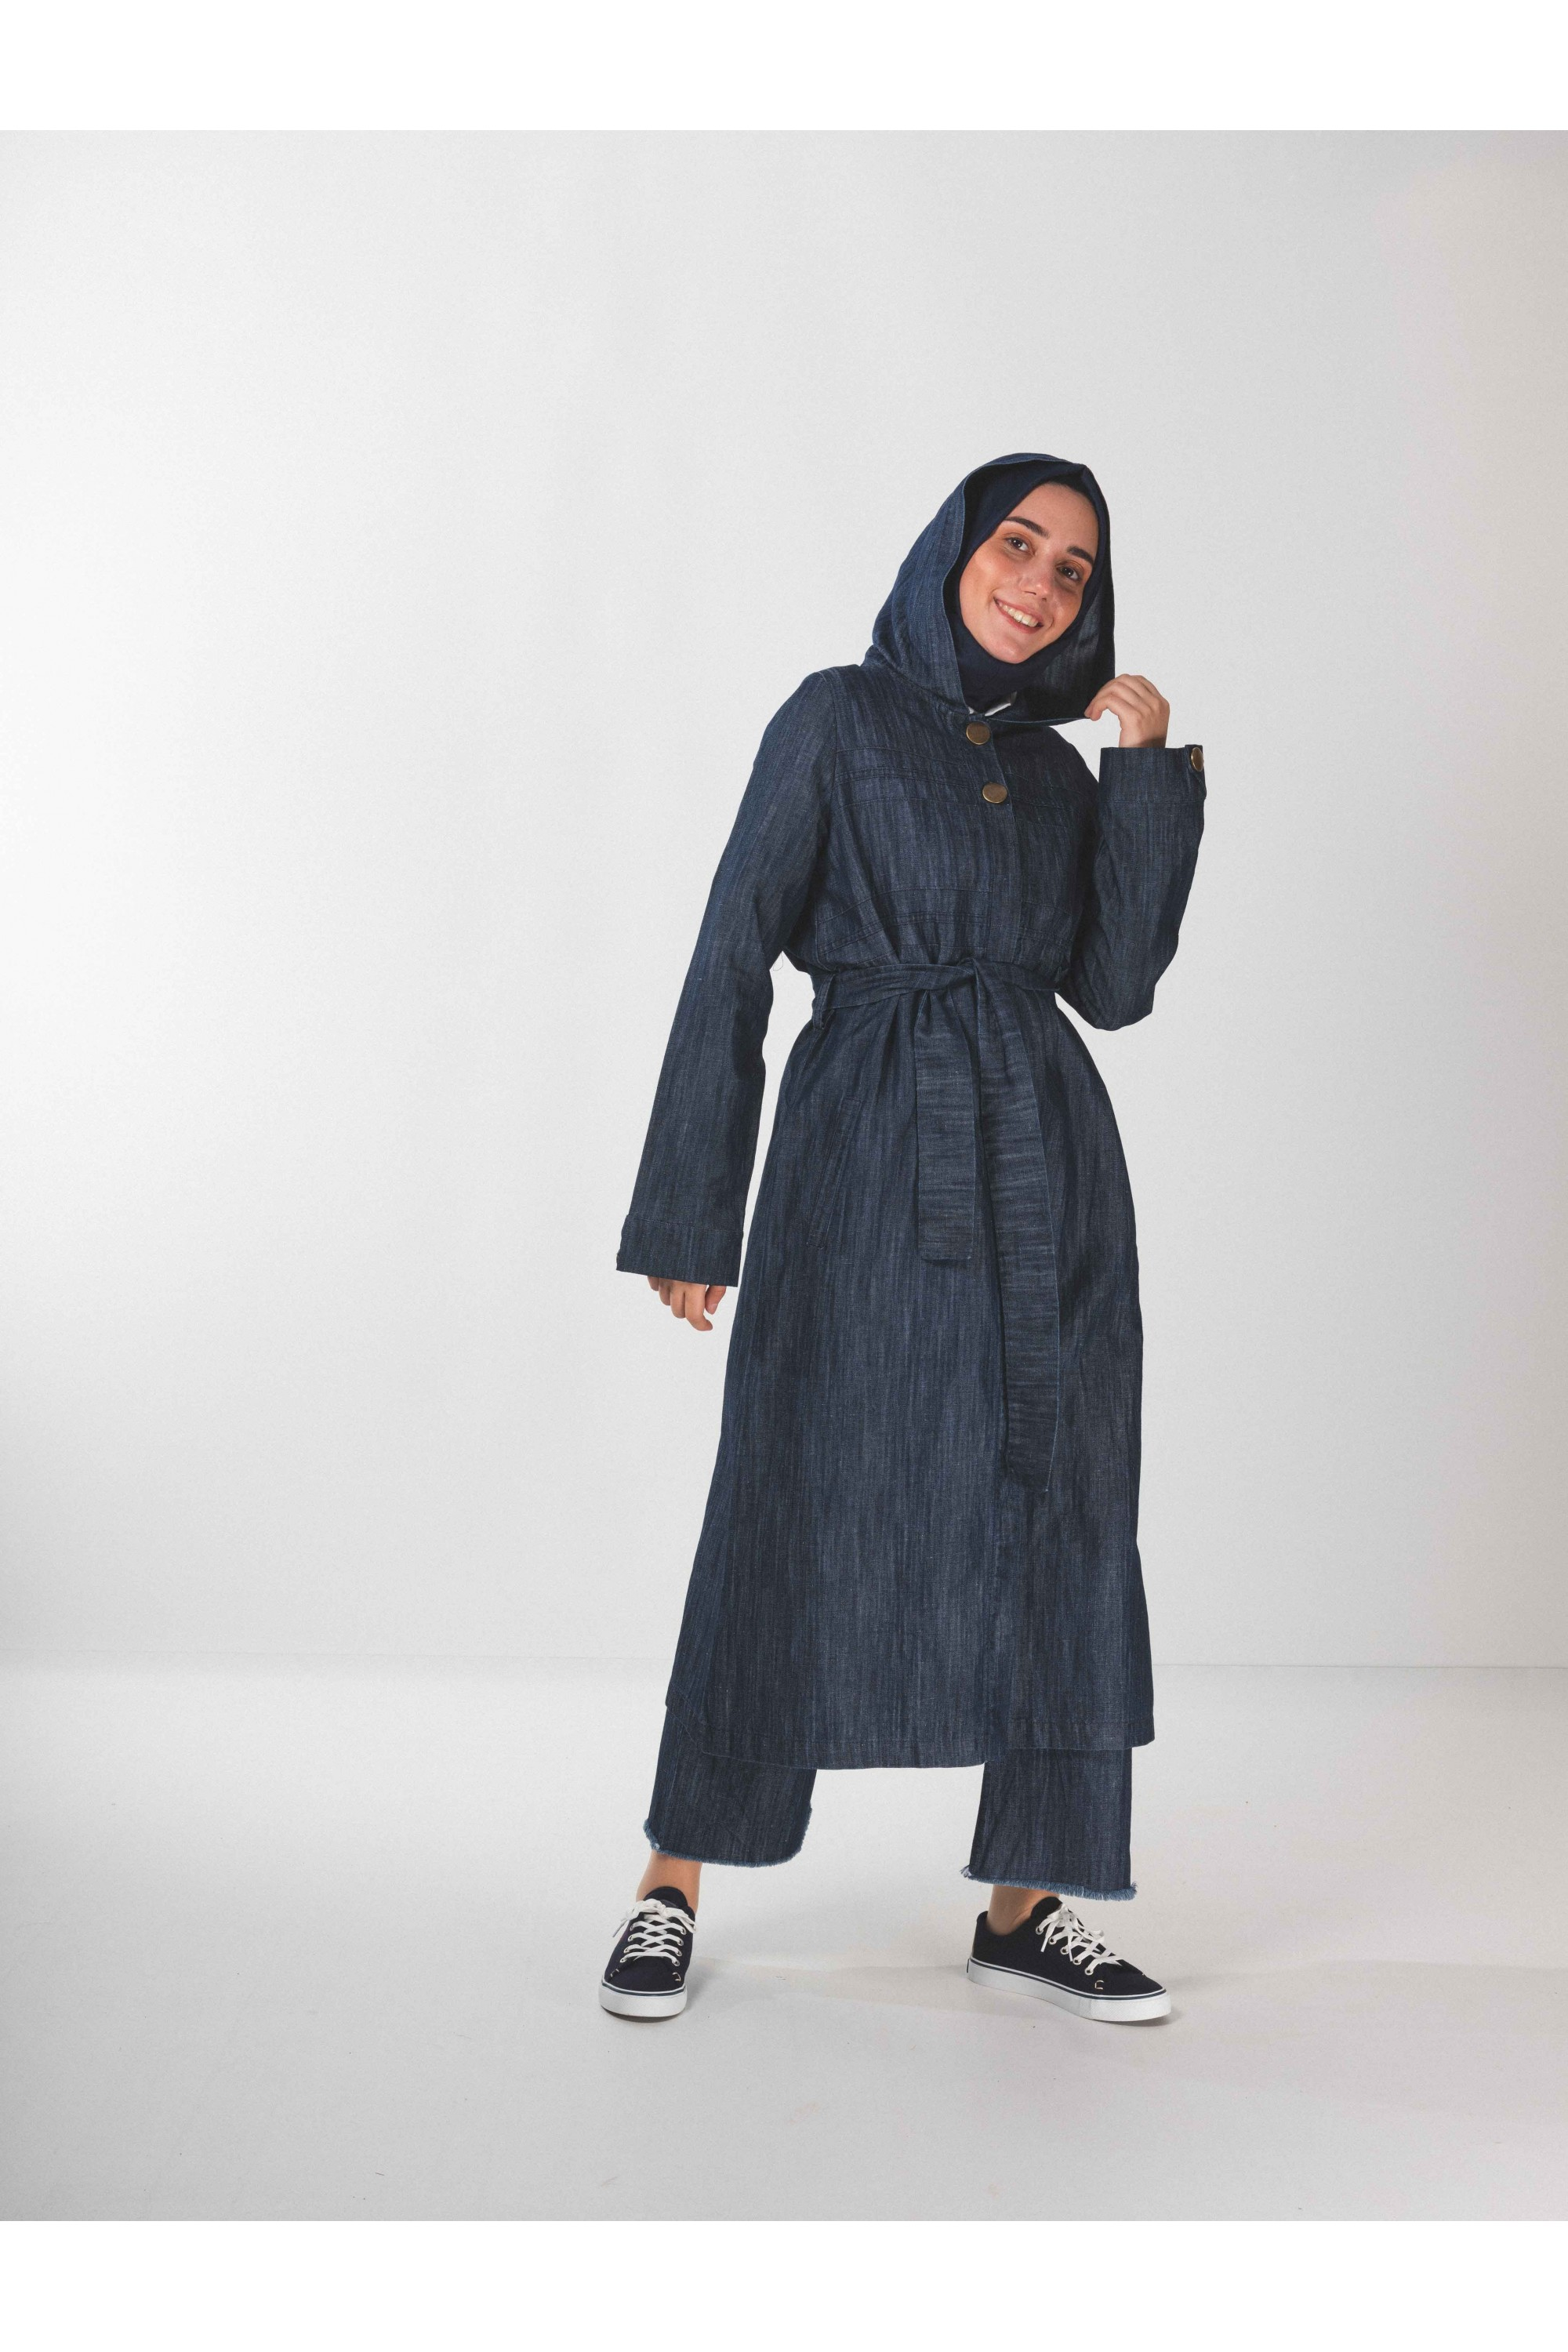 Buttoned Jeans Top Coat